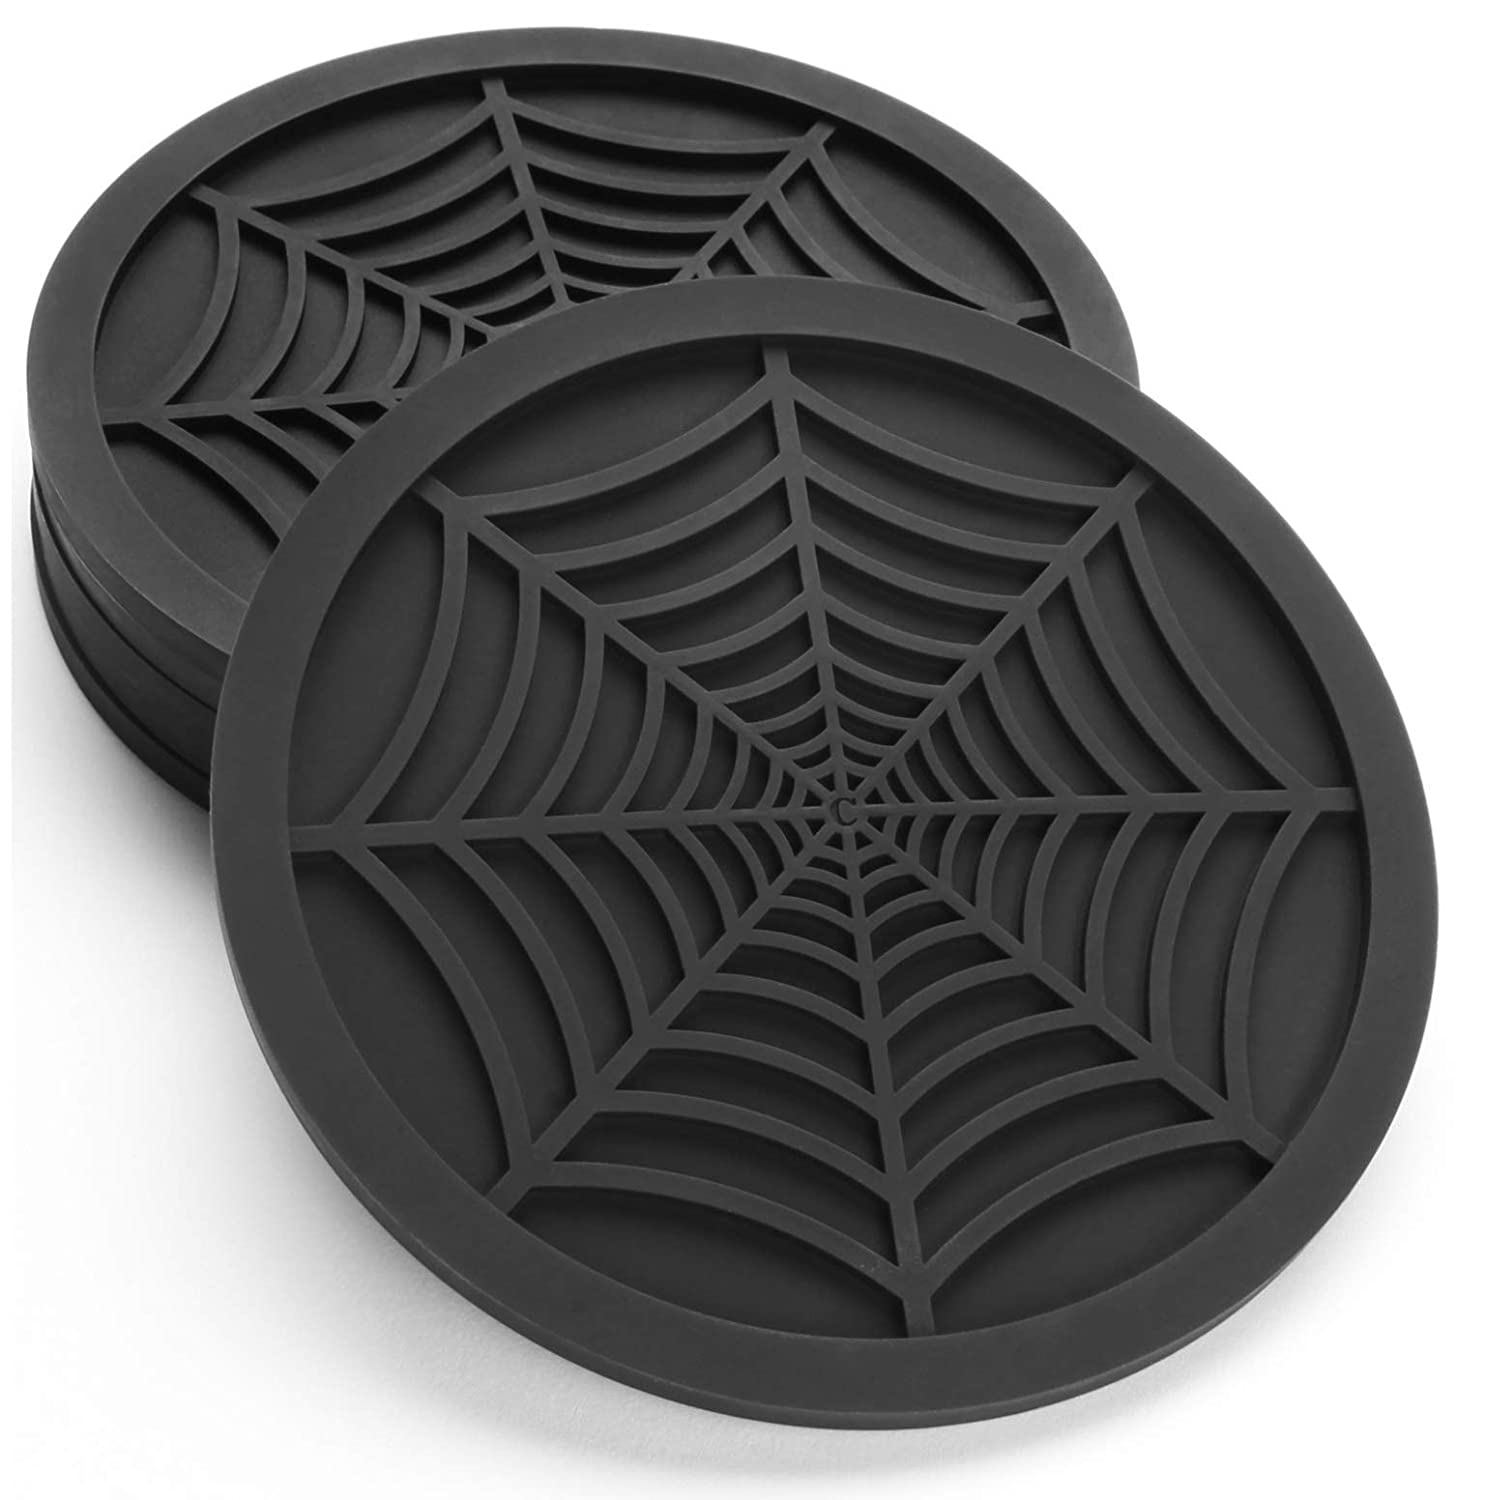 "Silicone Coasters For Drinks - 6 Pack Unique Design Spider Drink Coasters, 4"" Black Coaster Set by COASTERFIELD"